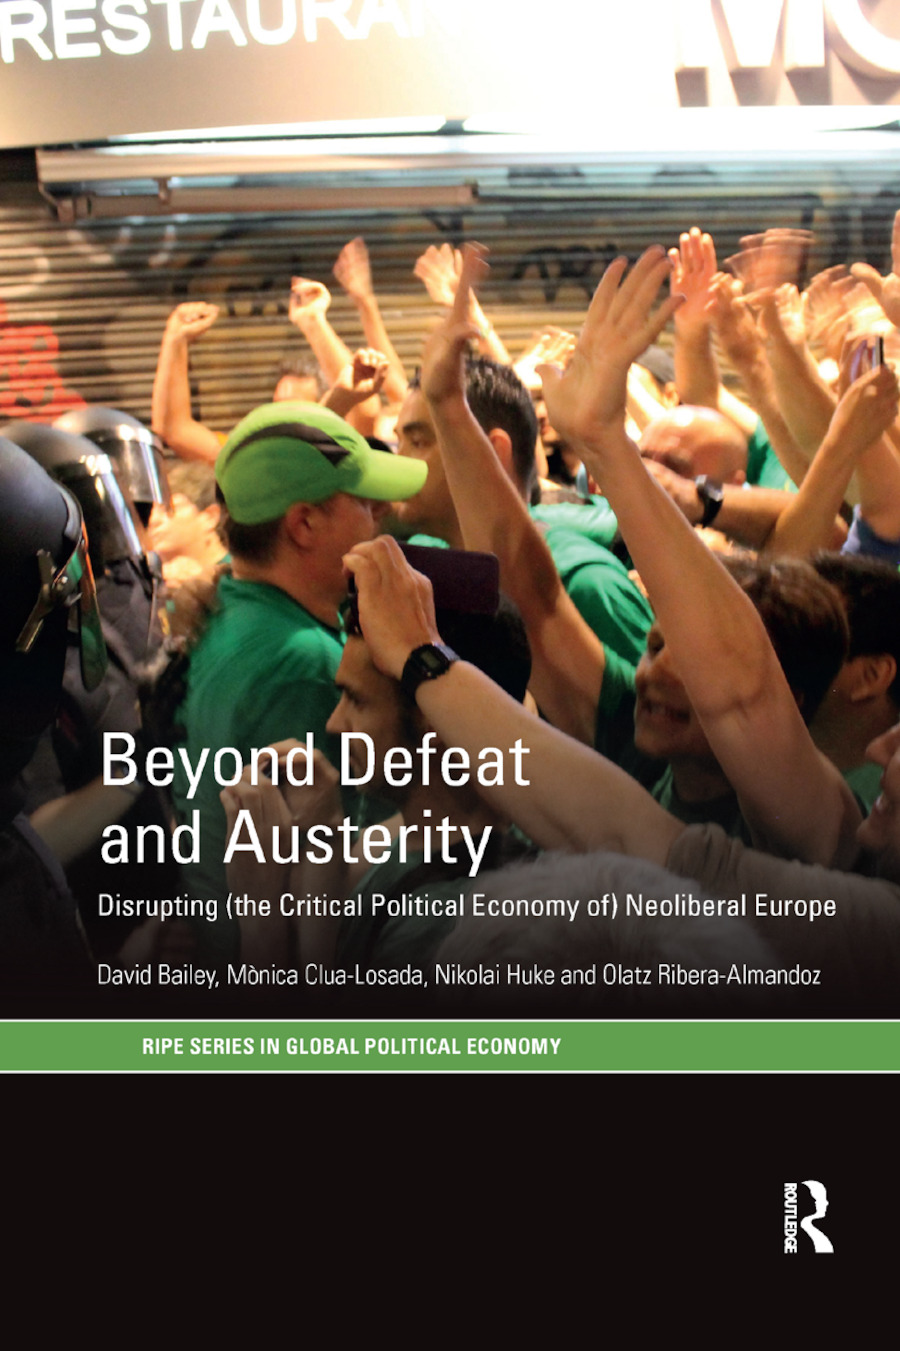 Beyond Defeat and Austerity: Disrupting (the Critical Political Economy of) Neoliberal Europe book cover